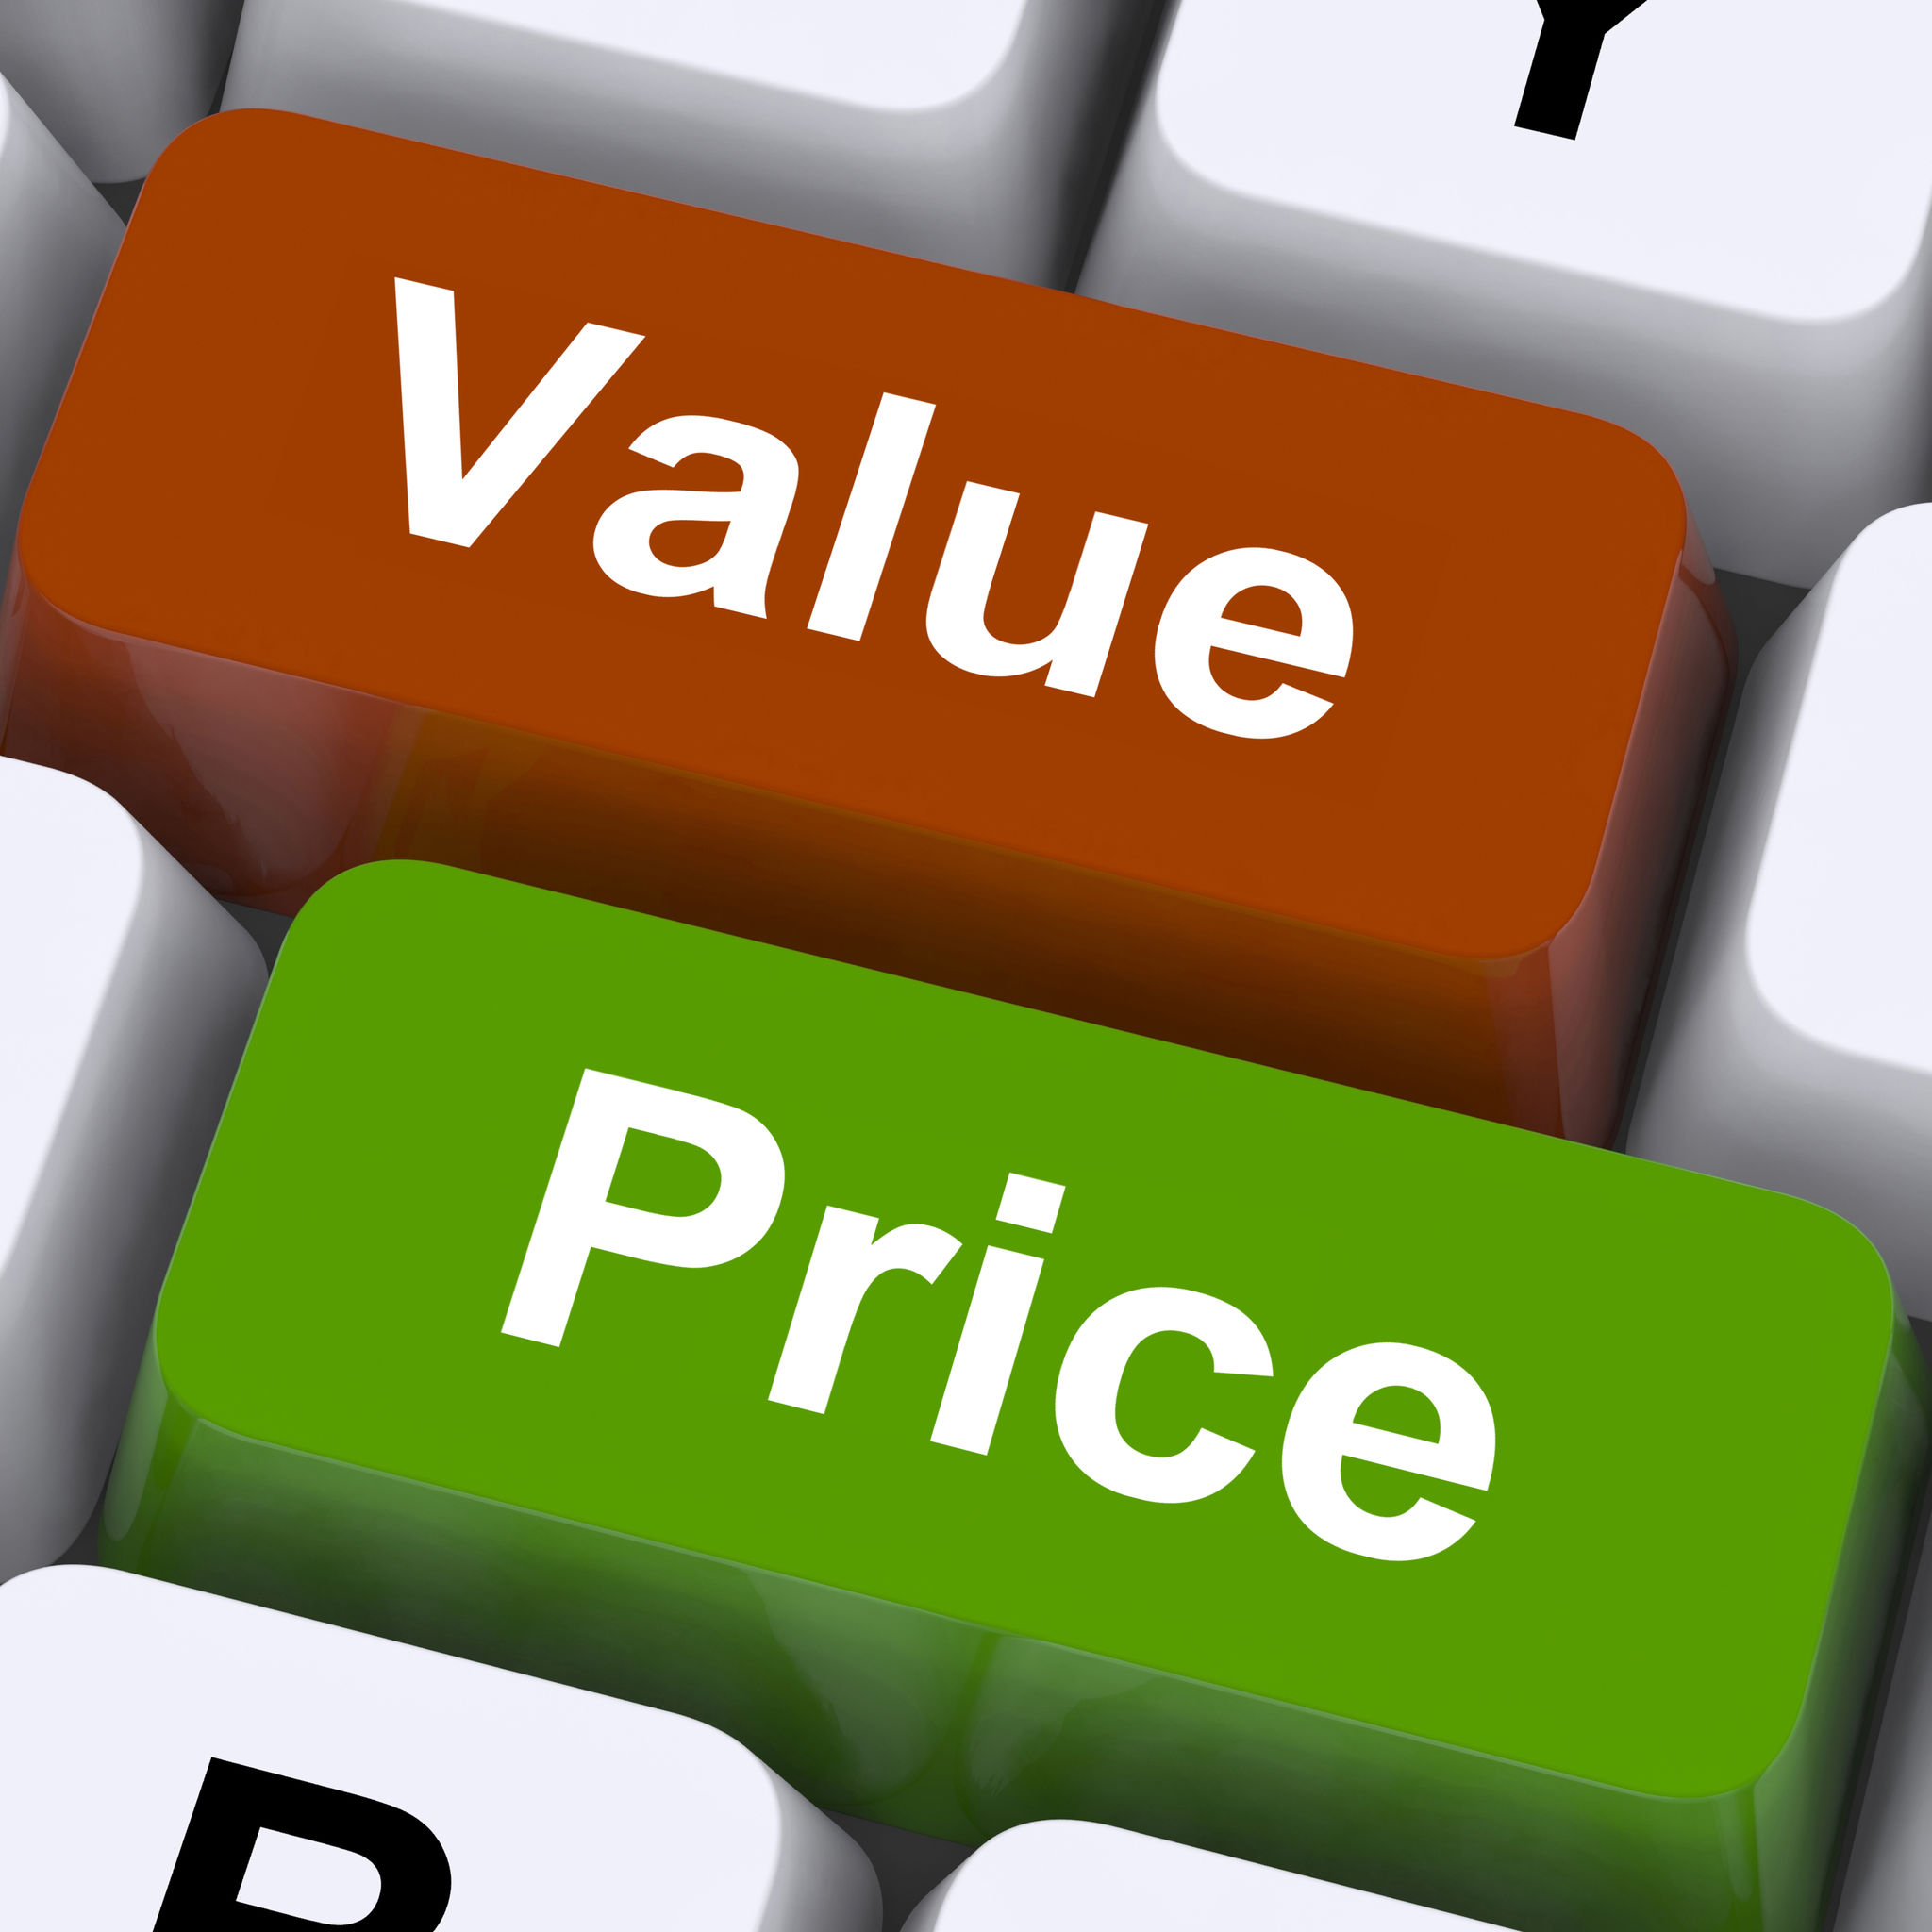 Value Of Trading On Matchbook Or Betfair Is More Than Money